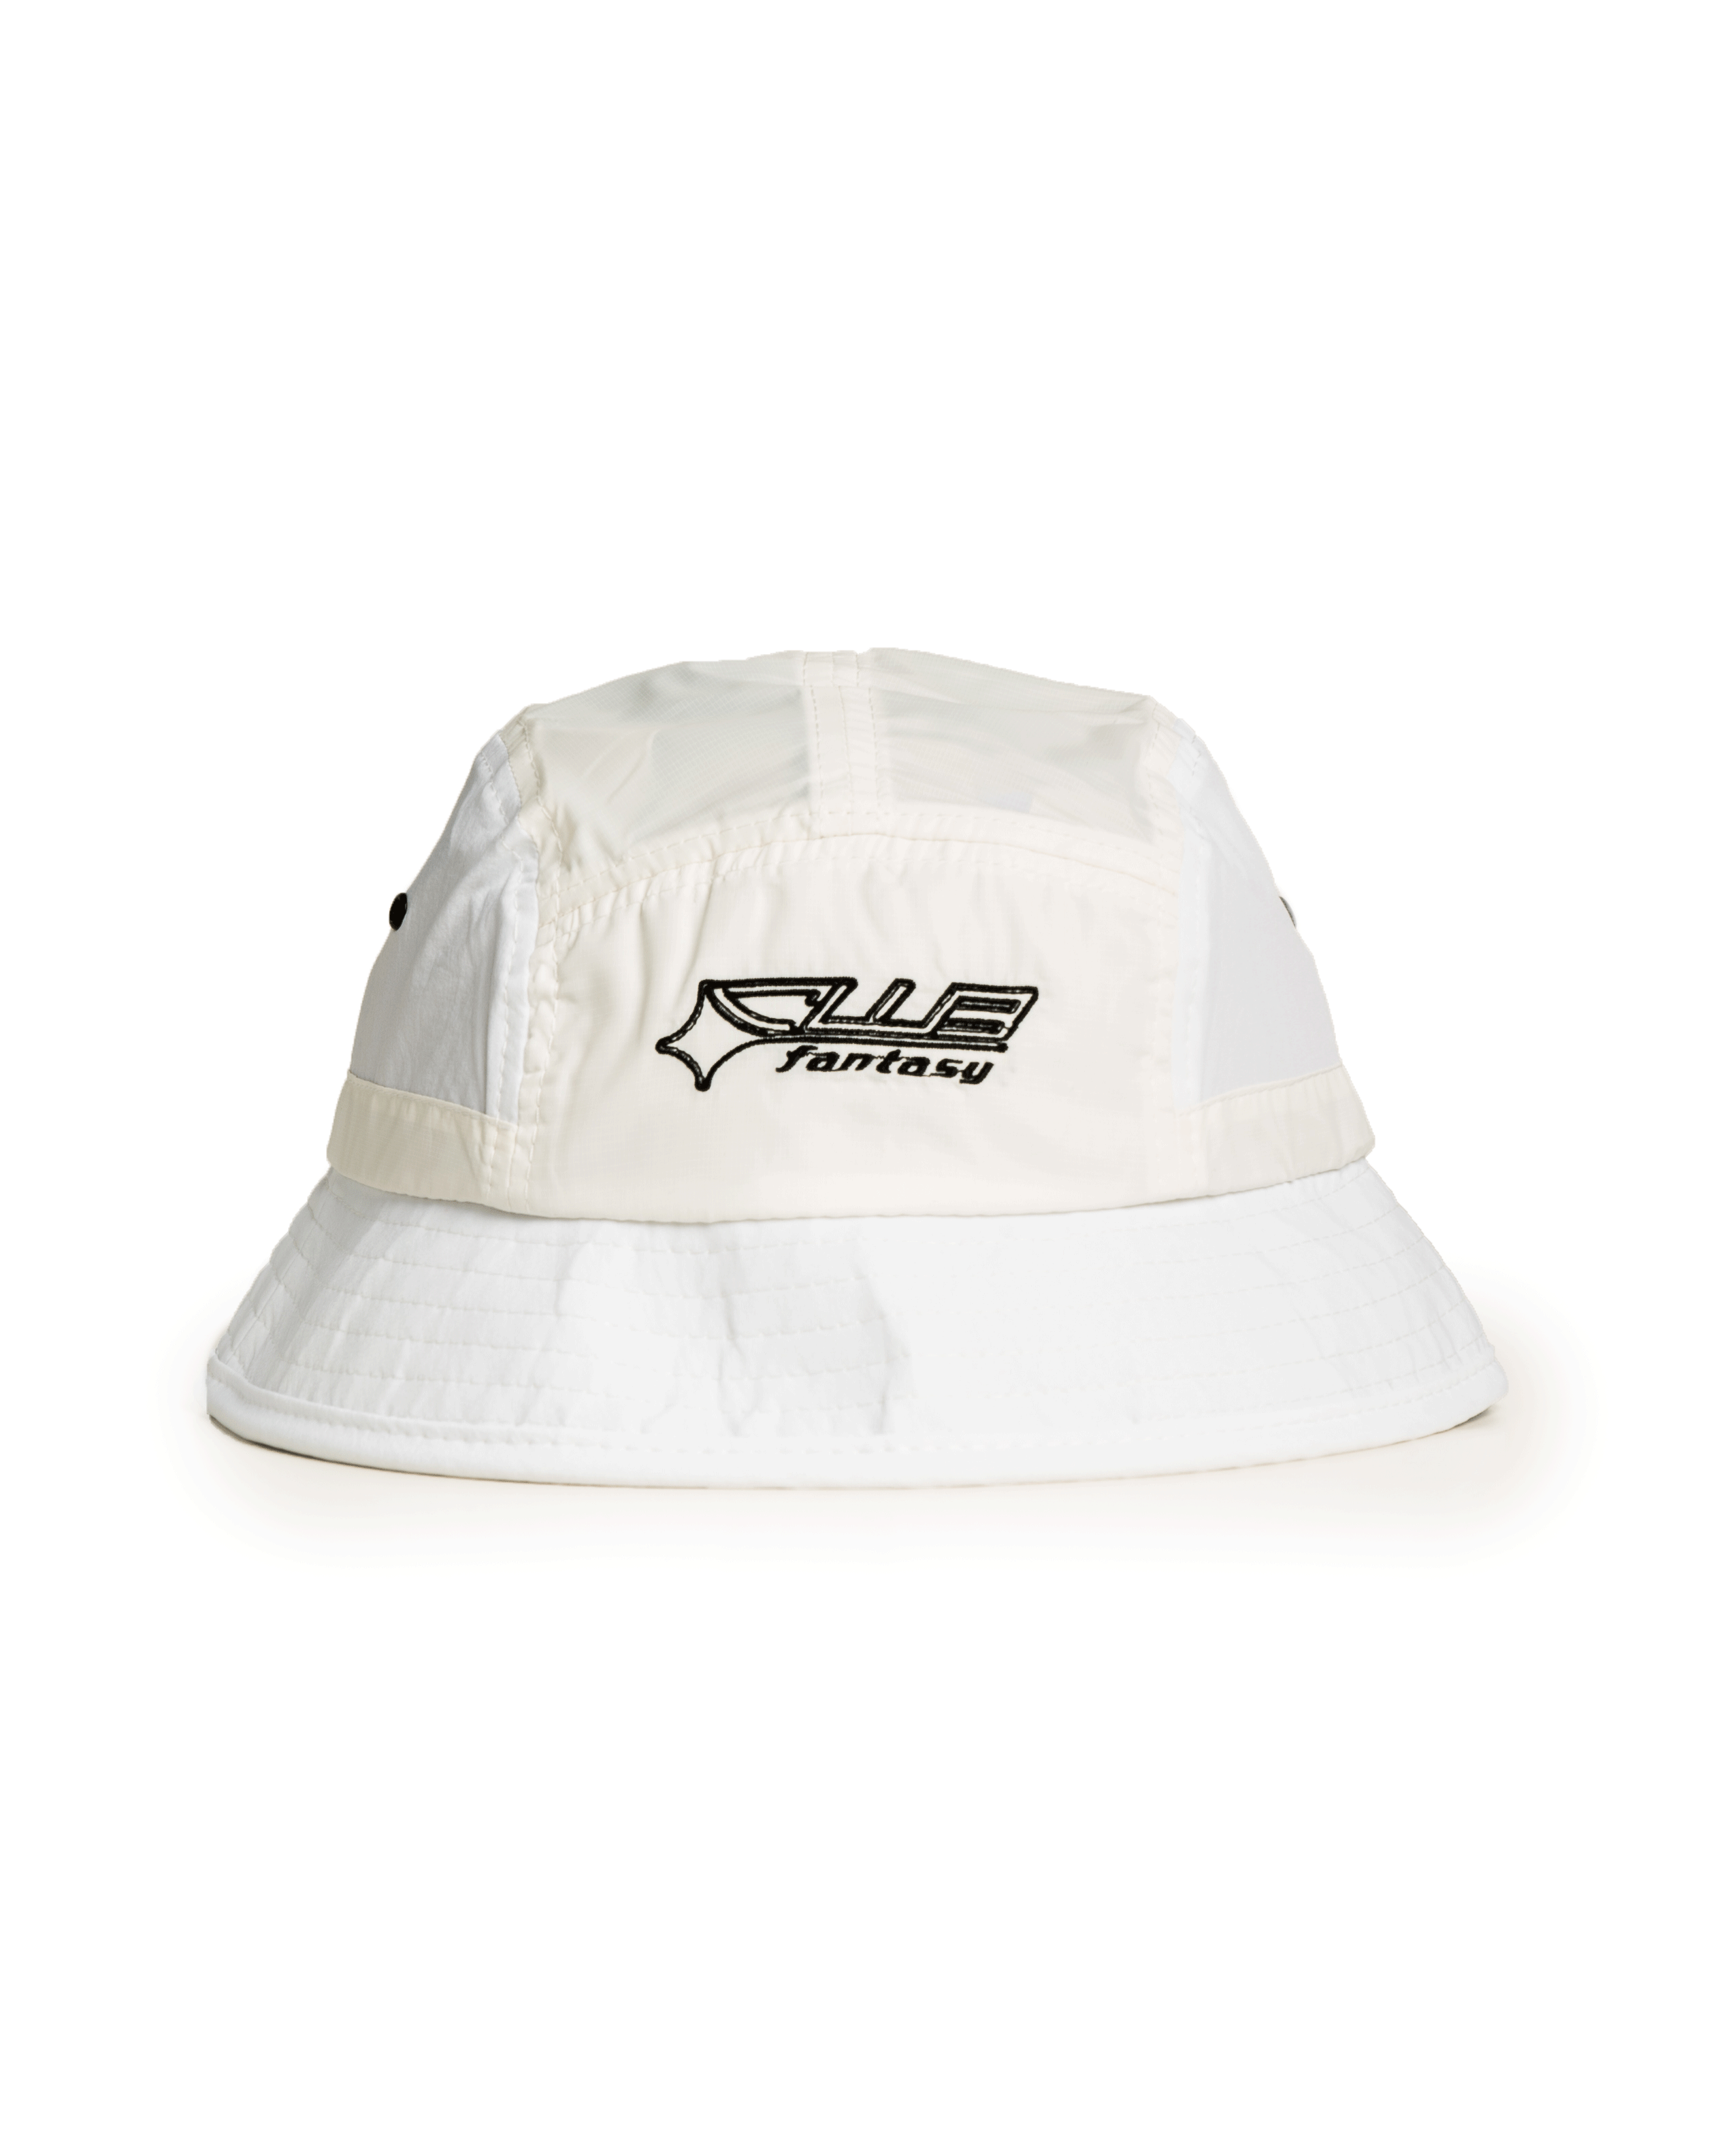 Club Fantasy Raver Bucket Hat White